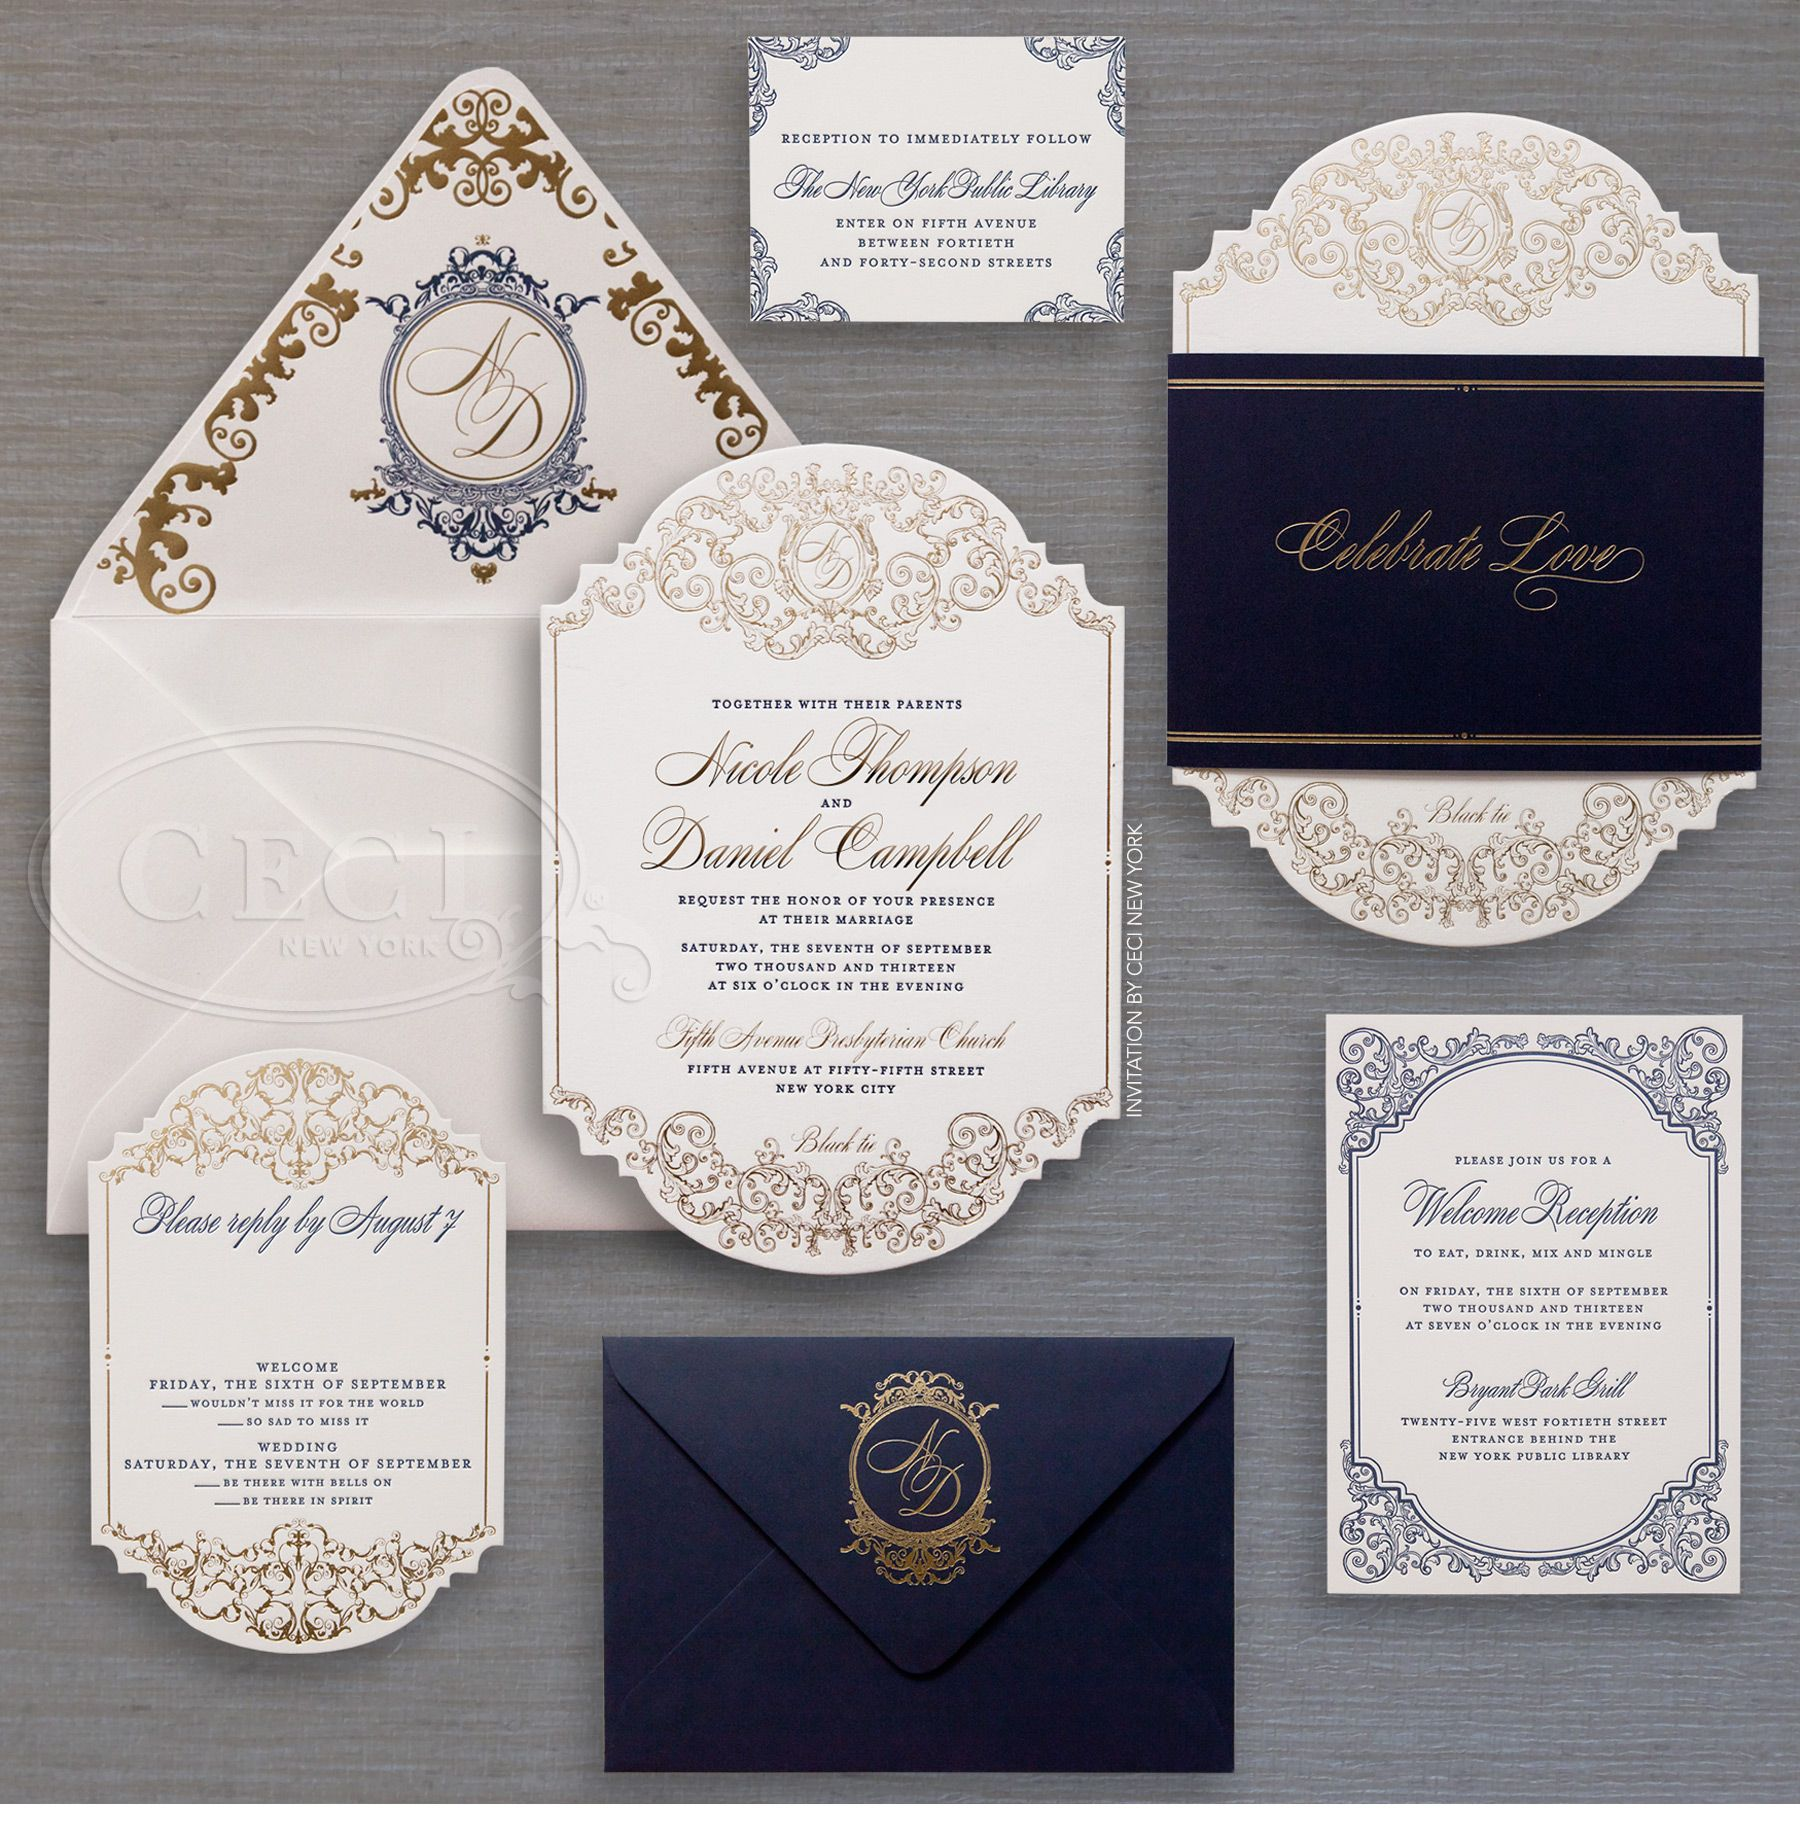 Attractive Luxury Wedding Invitations By Ceci New York   Sophisticated Wedding At The  New York Public Library